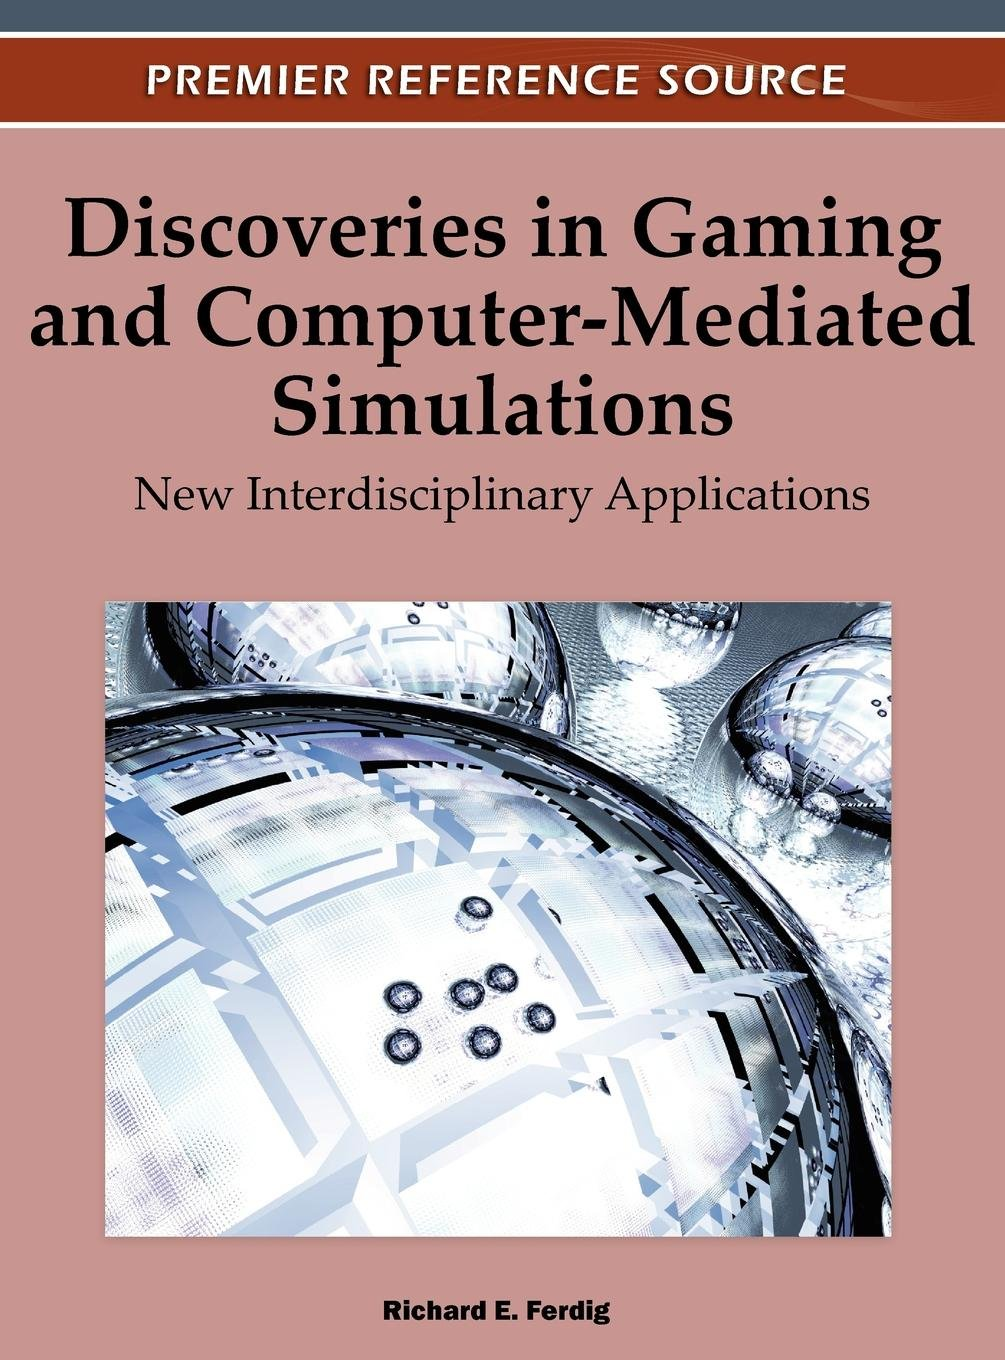 Discoveries in Gaming and Computer-Mediated Simulations: New Interdisciplinary Applications PDF